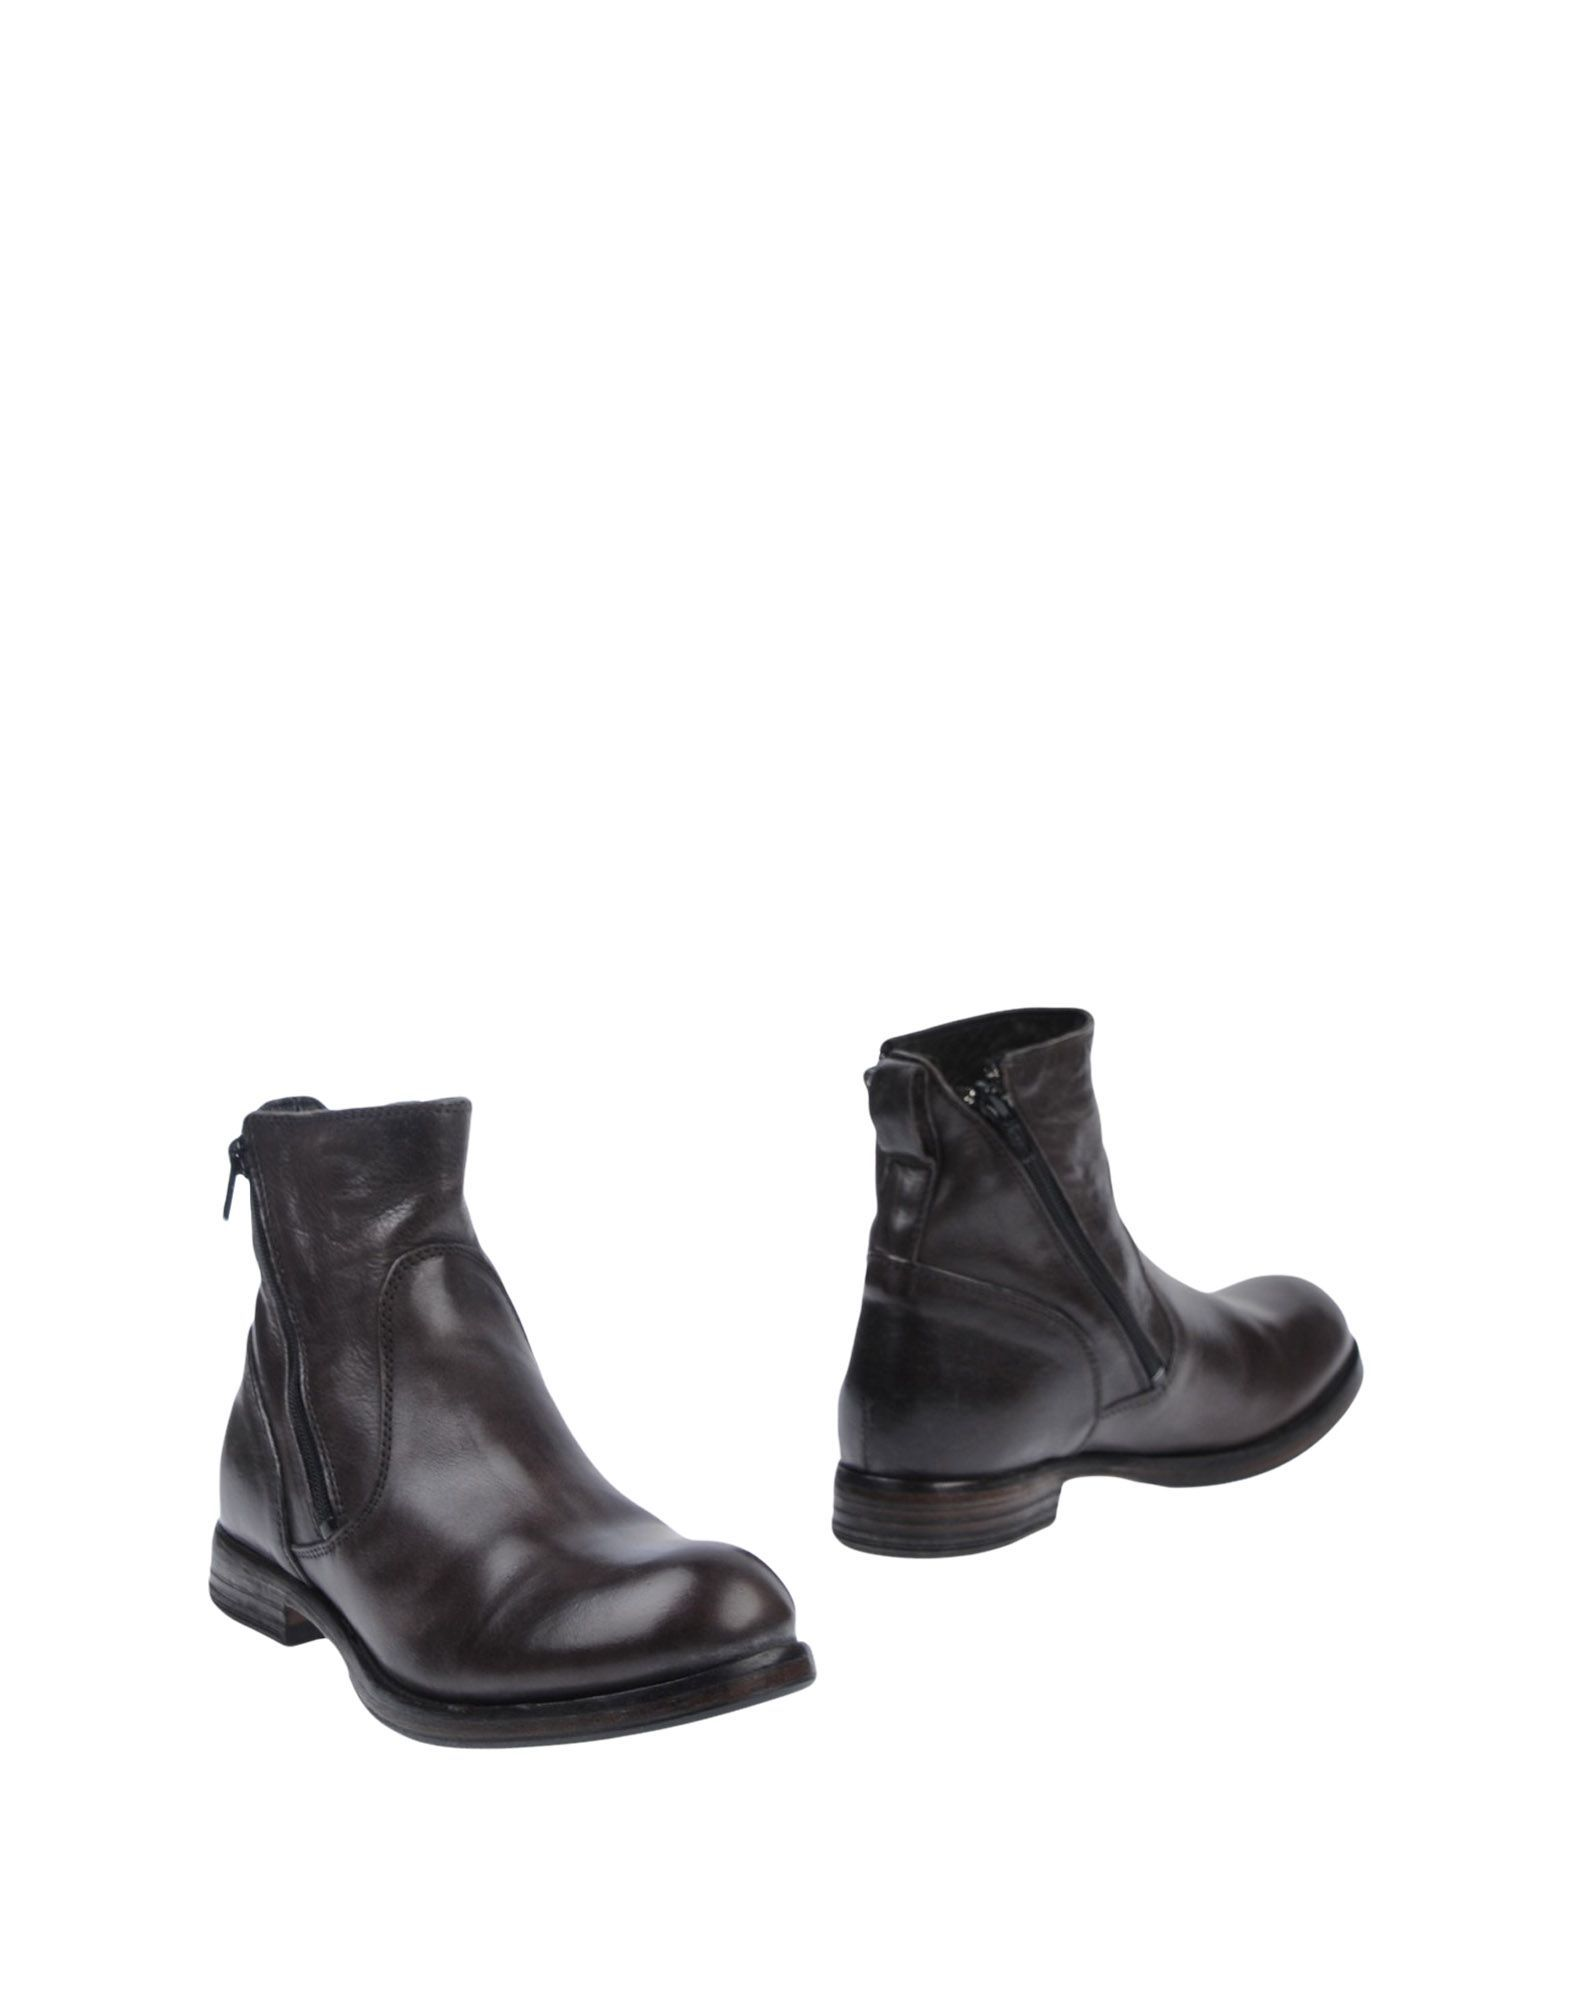 Moma Dark Brown Leather Boots